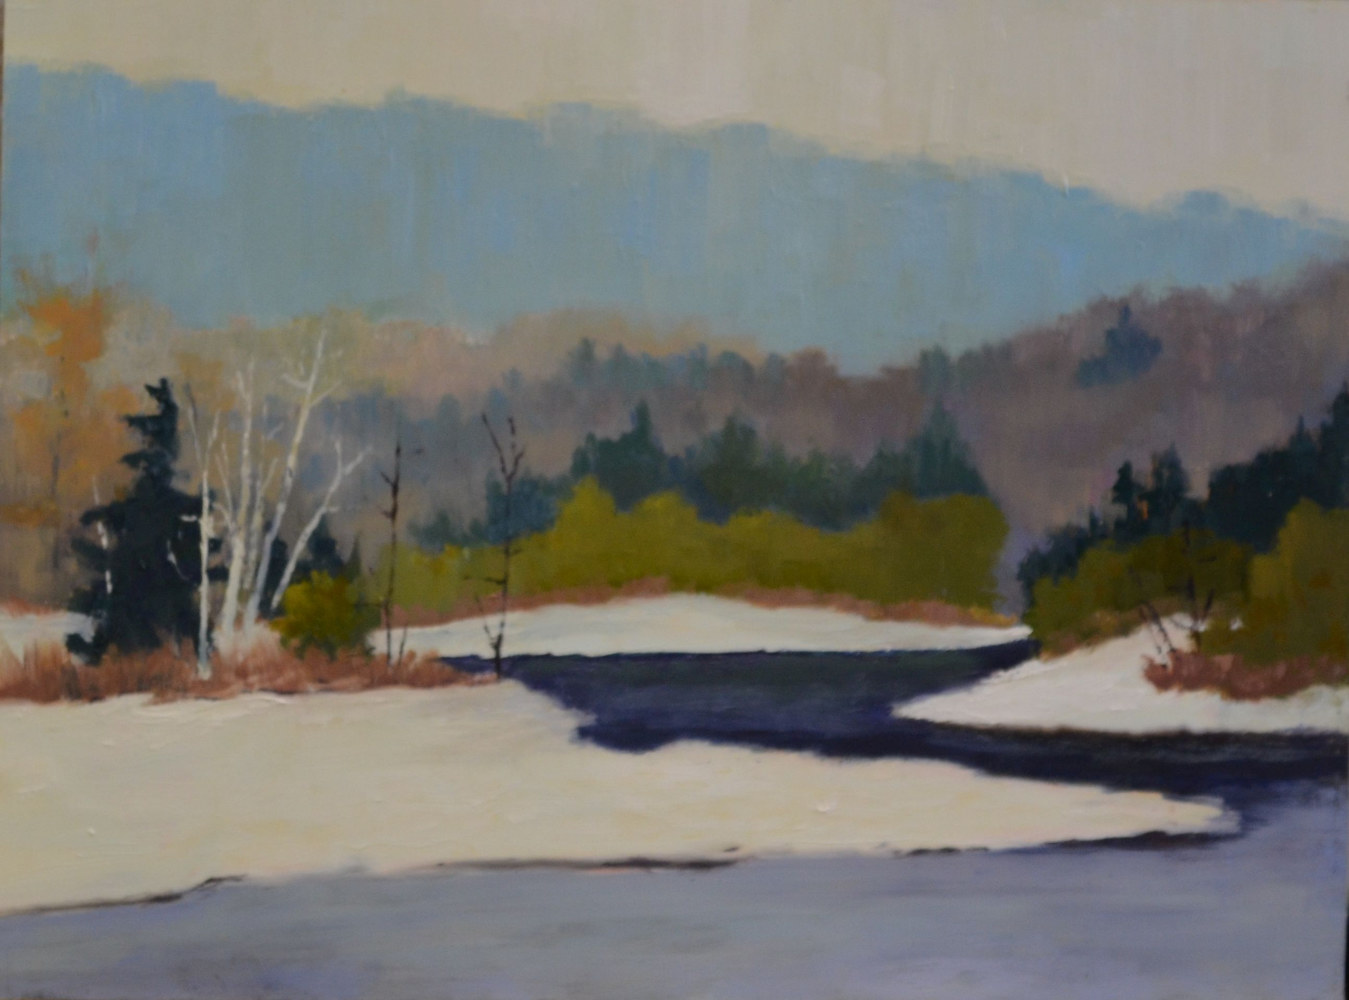 Madawaska Melt, 12 x 16, oil on cradled wood gallery panel, 4-0217 by Patricia Savoie